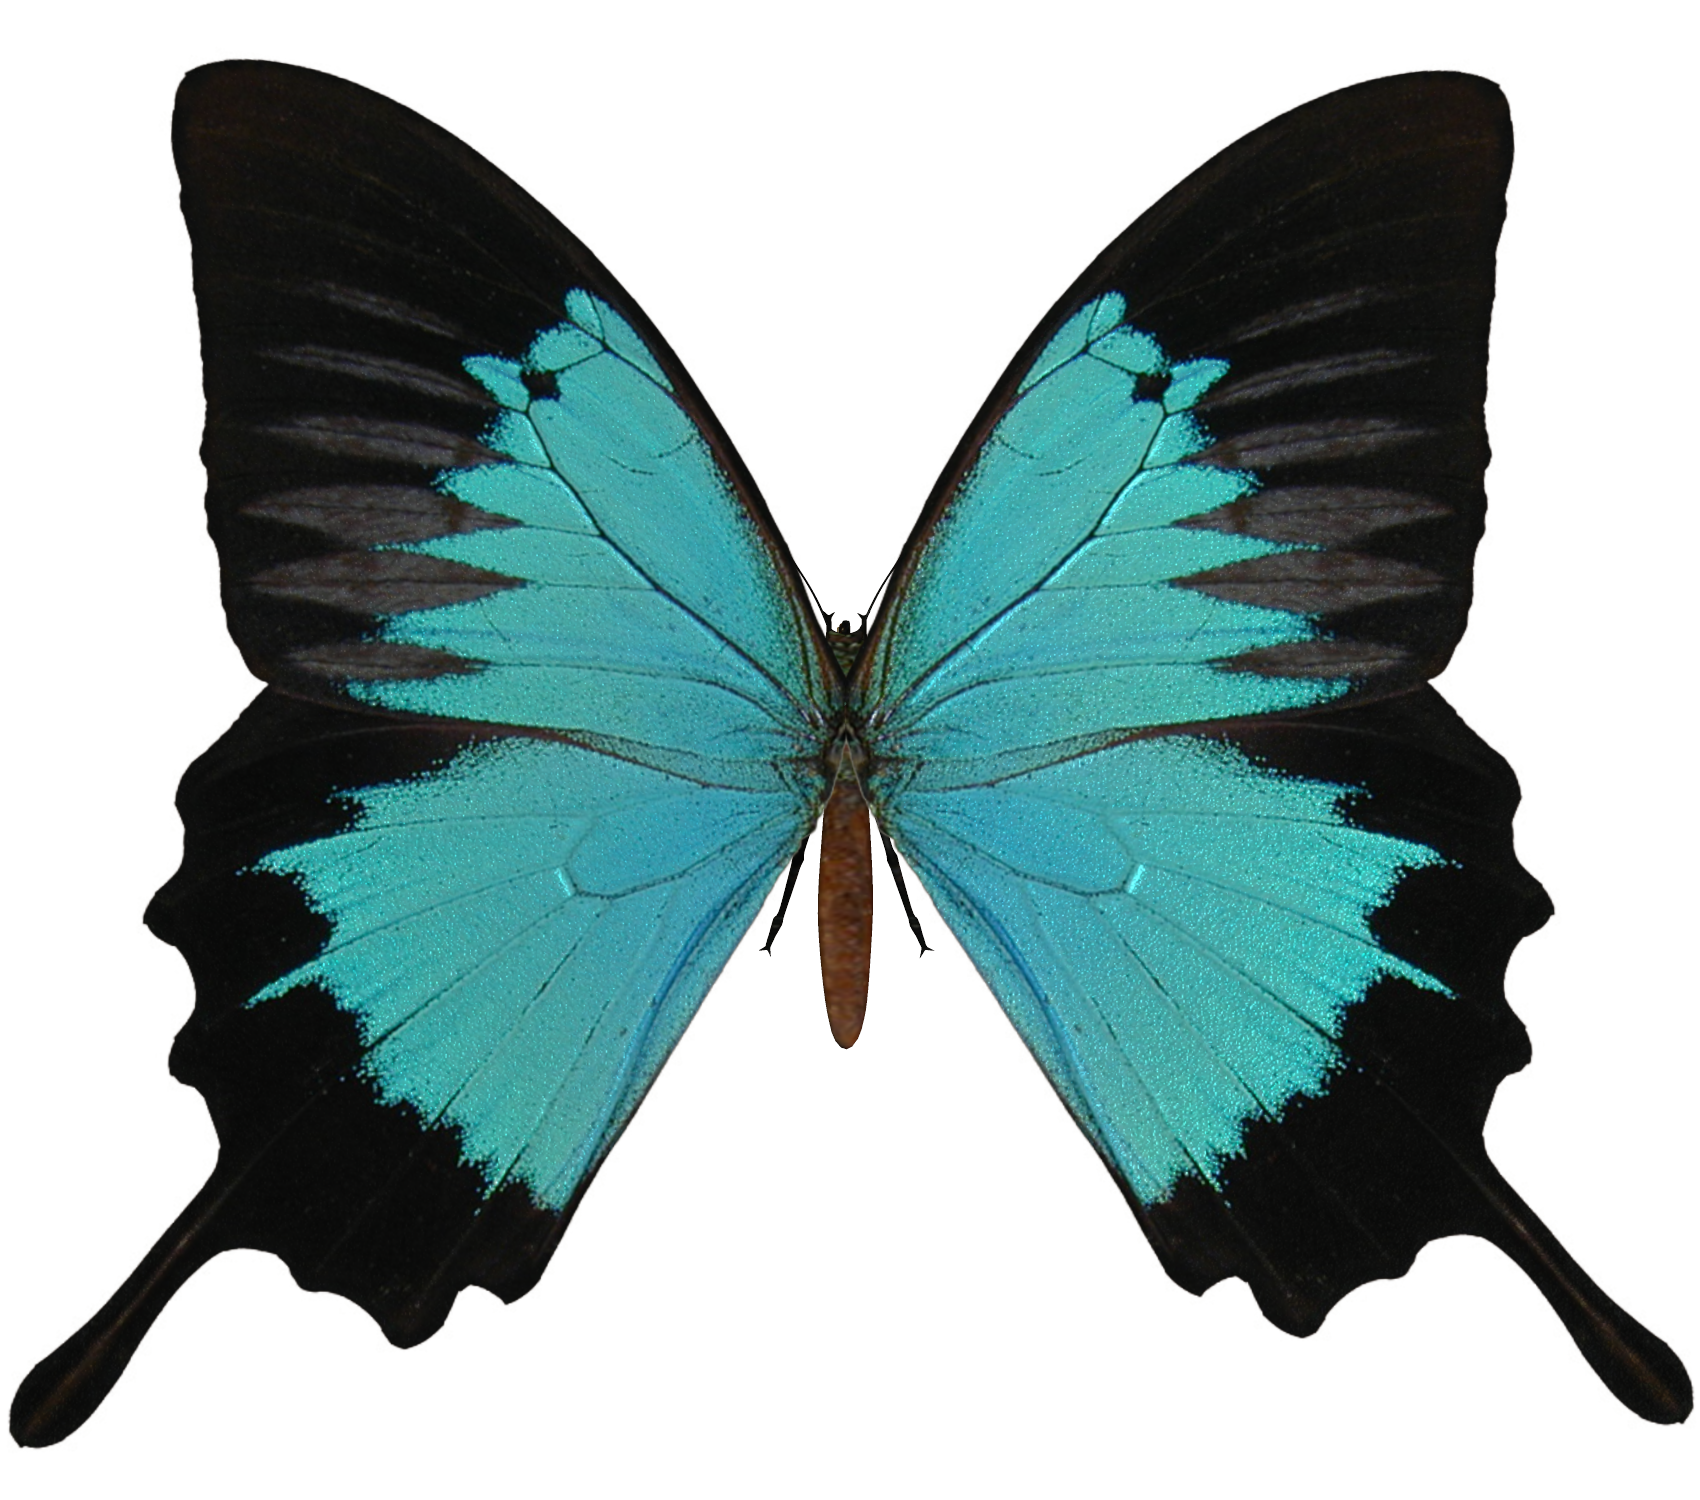 Png Format Images Of Butterflies image #26550